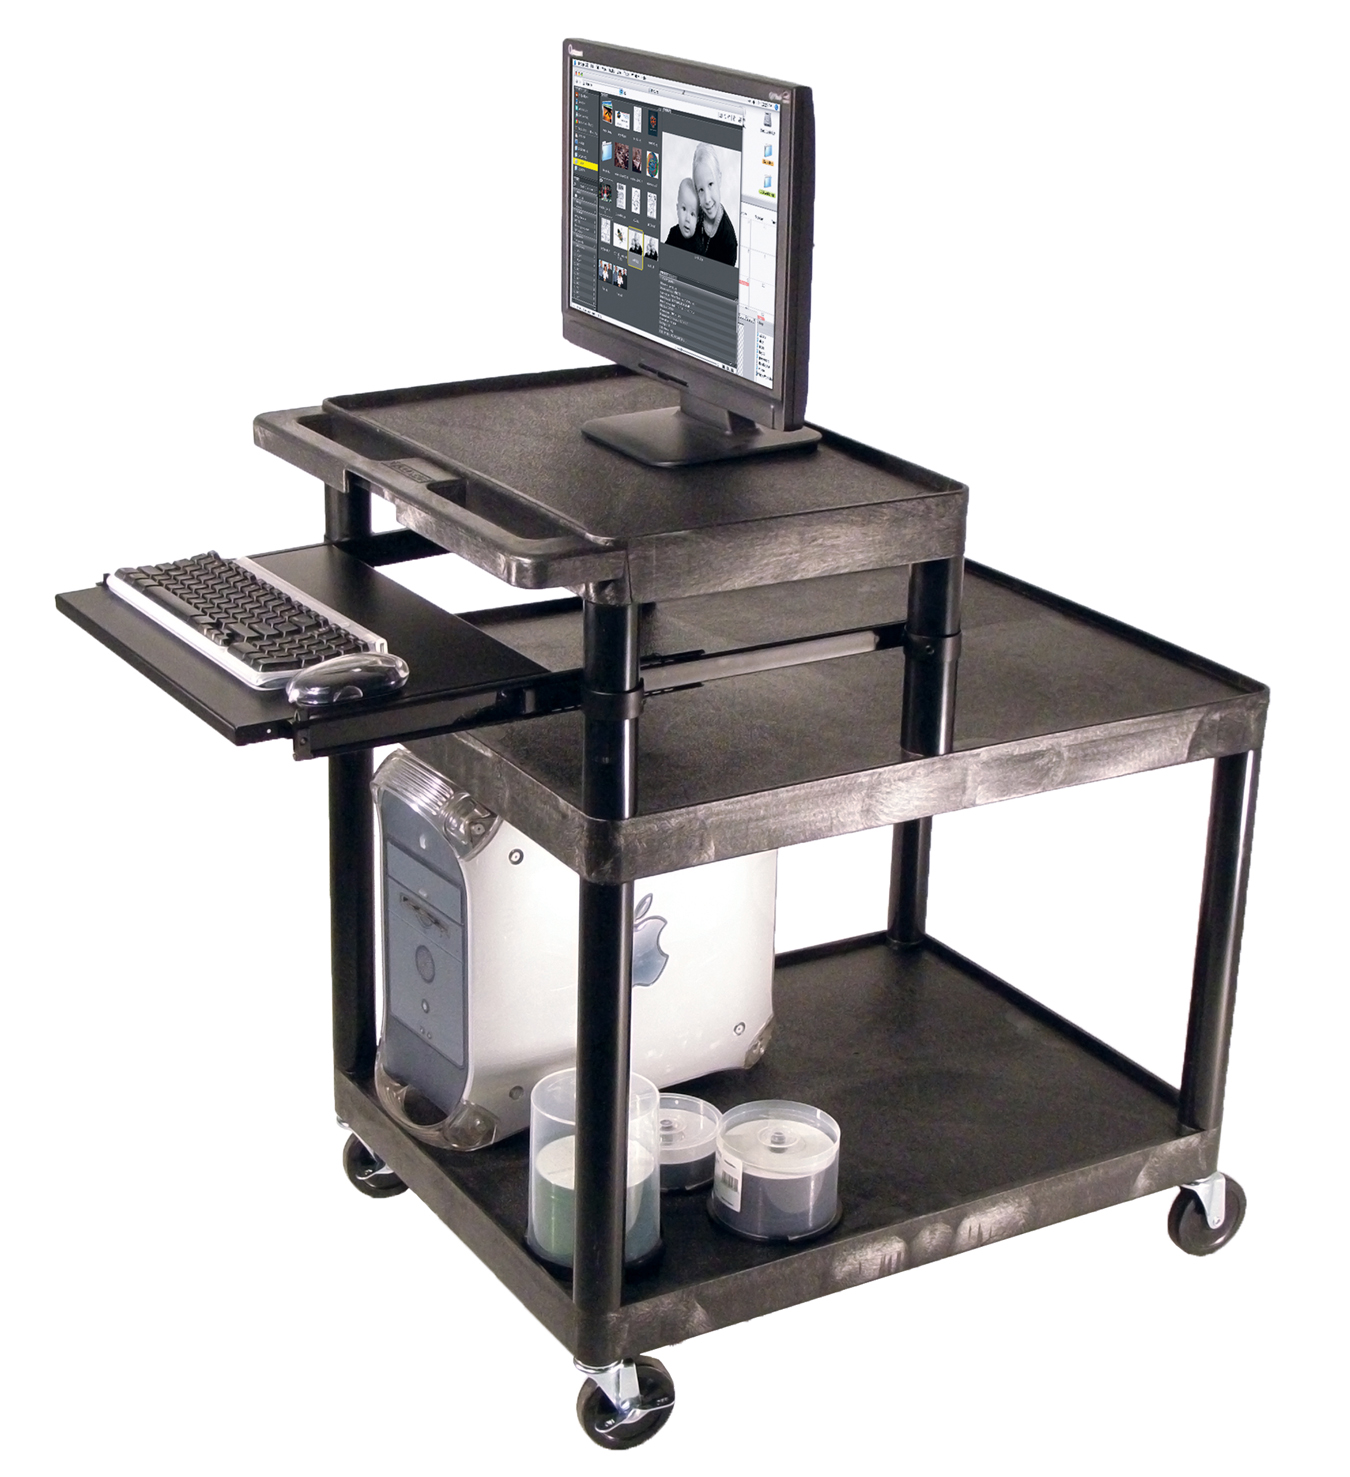 Offex Open Shelf Mobile Workstation with Small Upper Shelf and Pull Out Tray Black and Light Gray